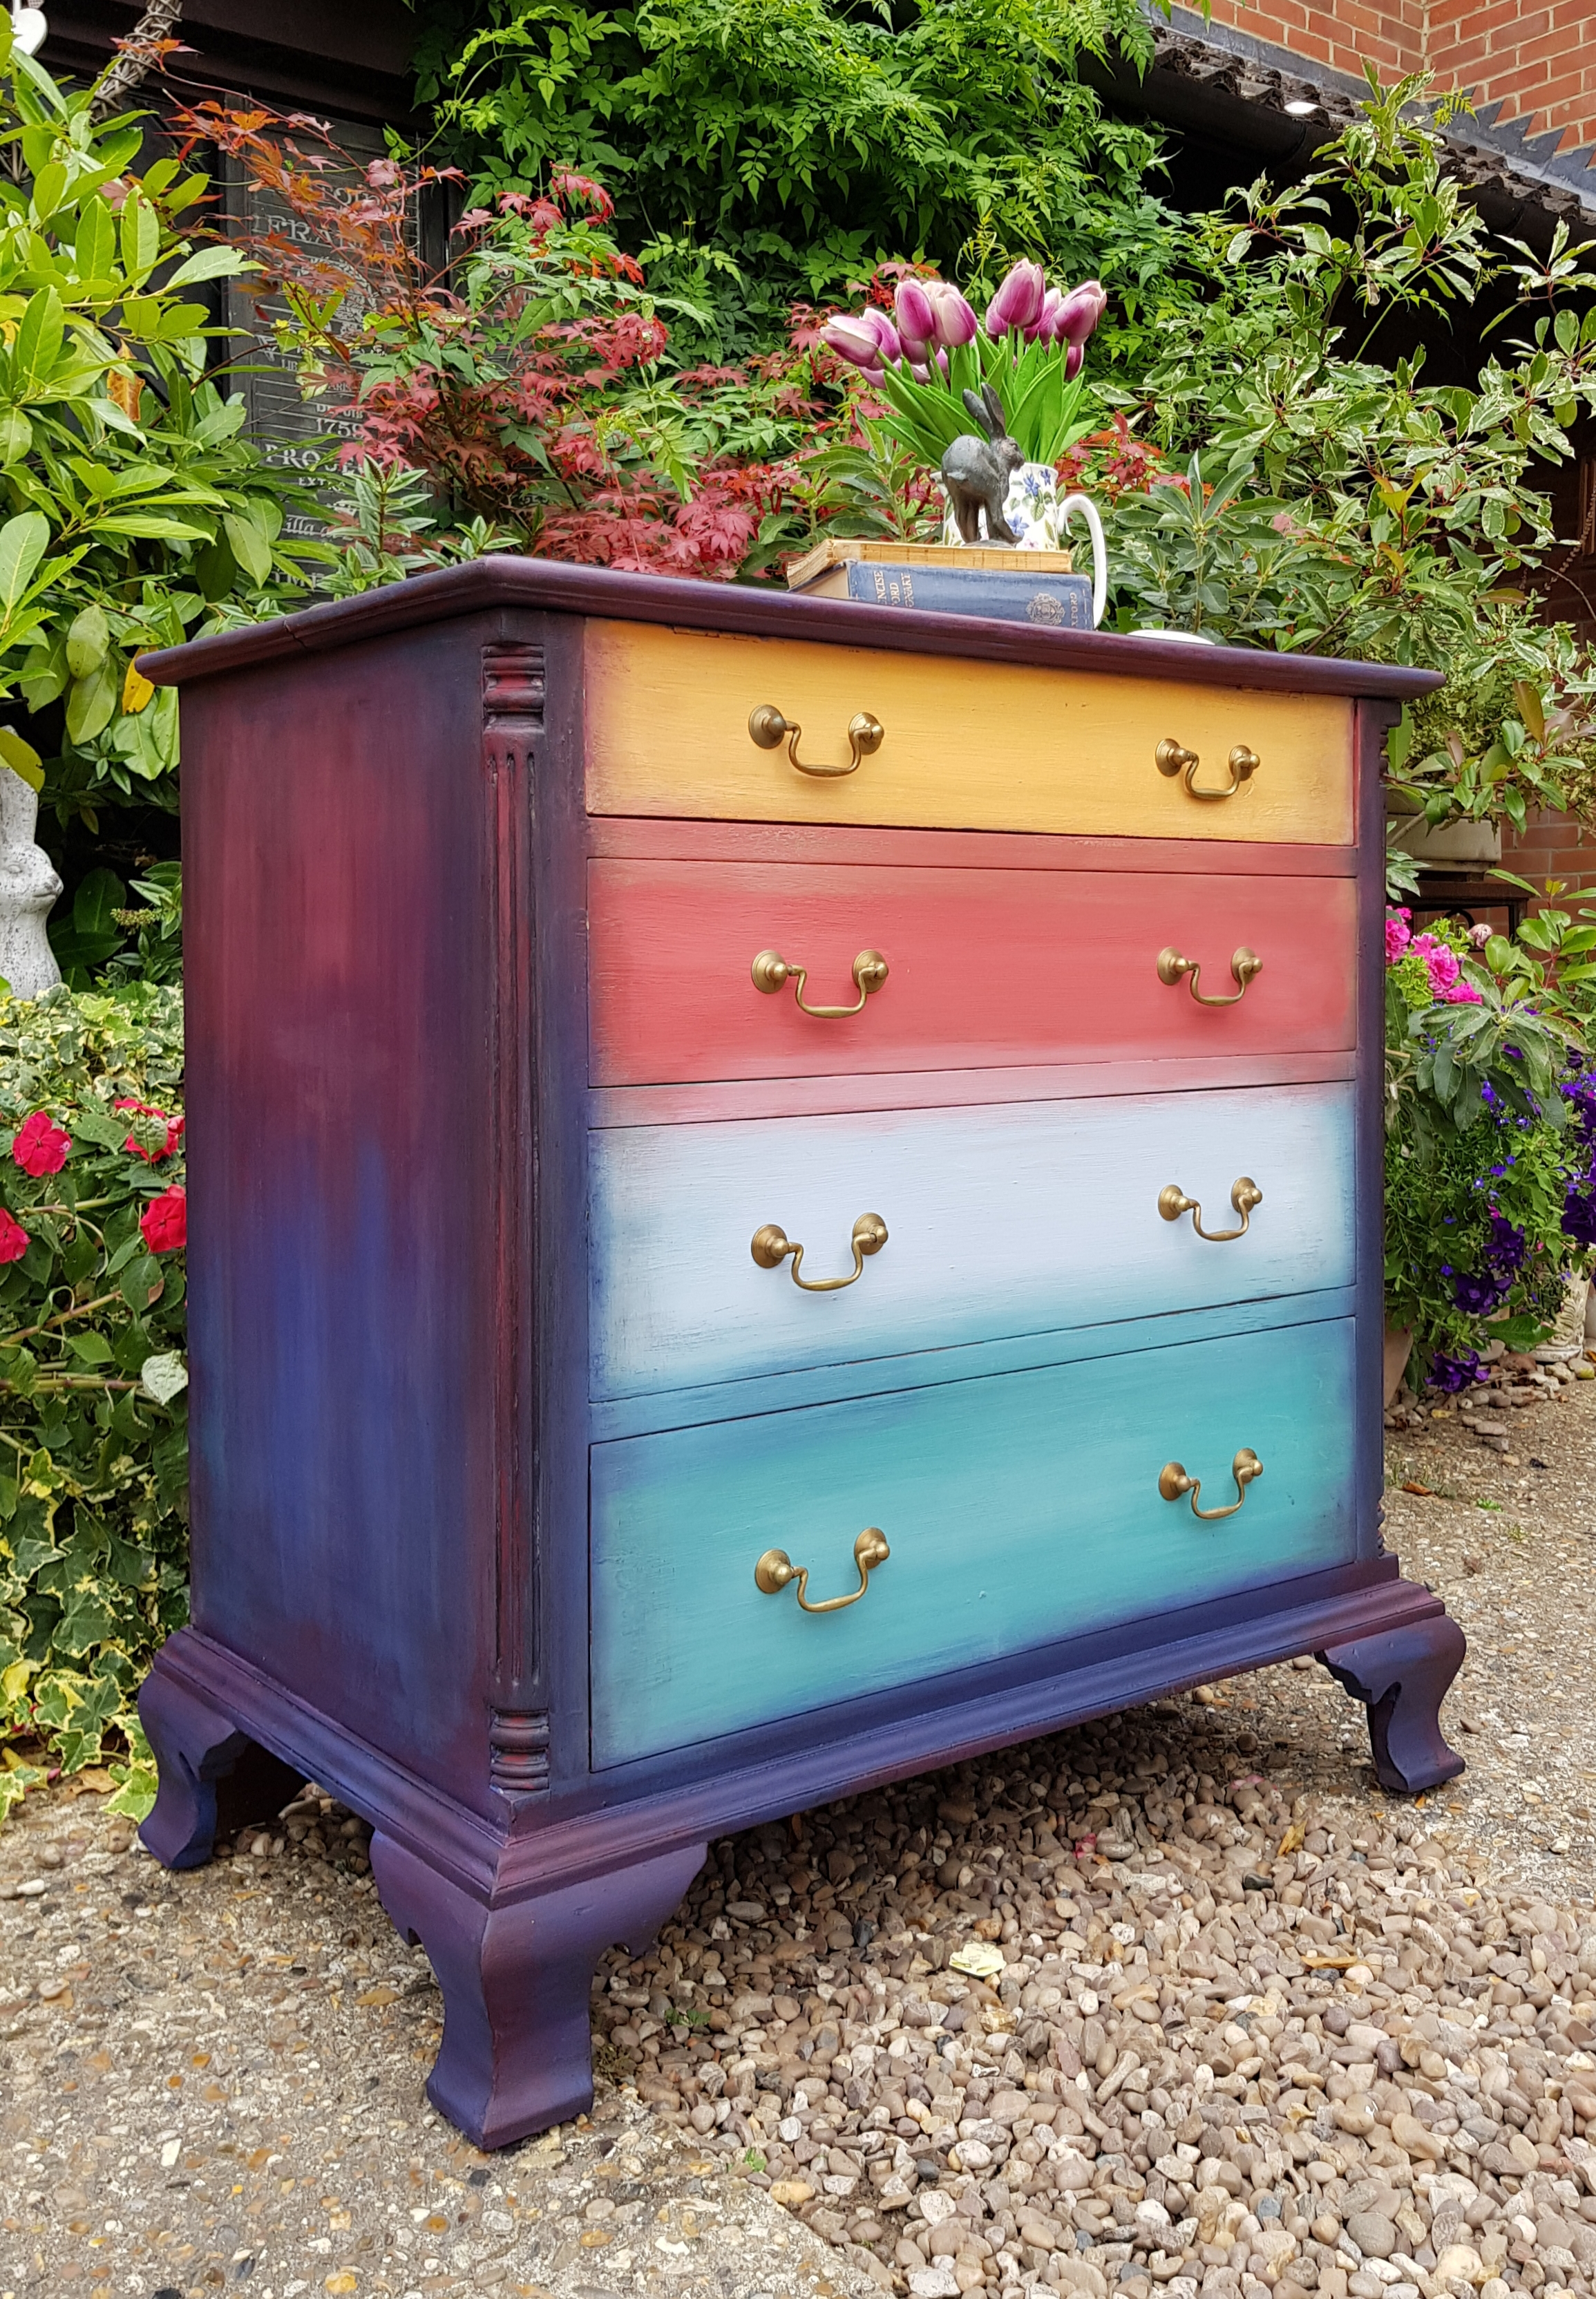 THE BLENDED RAINBOW DRAWERS